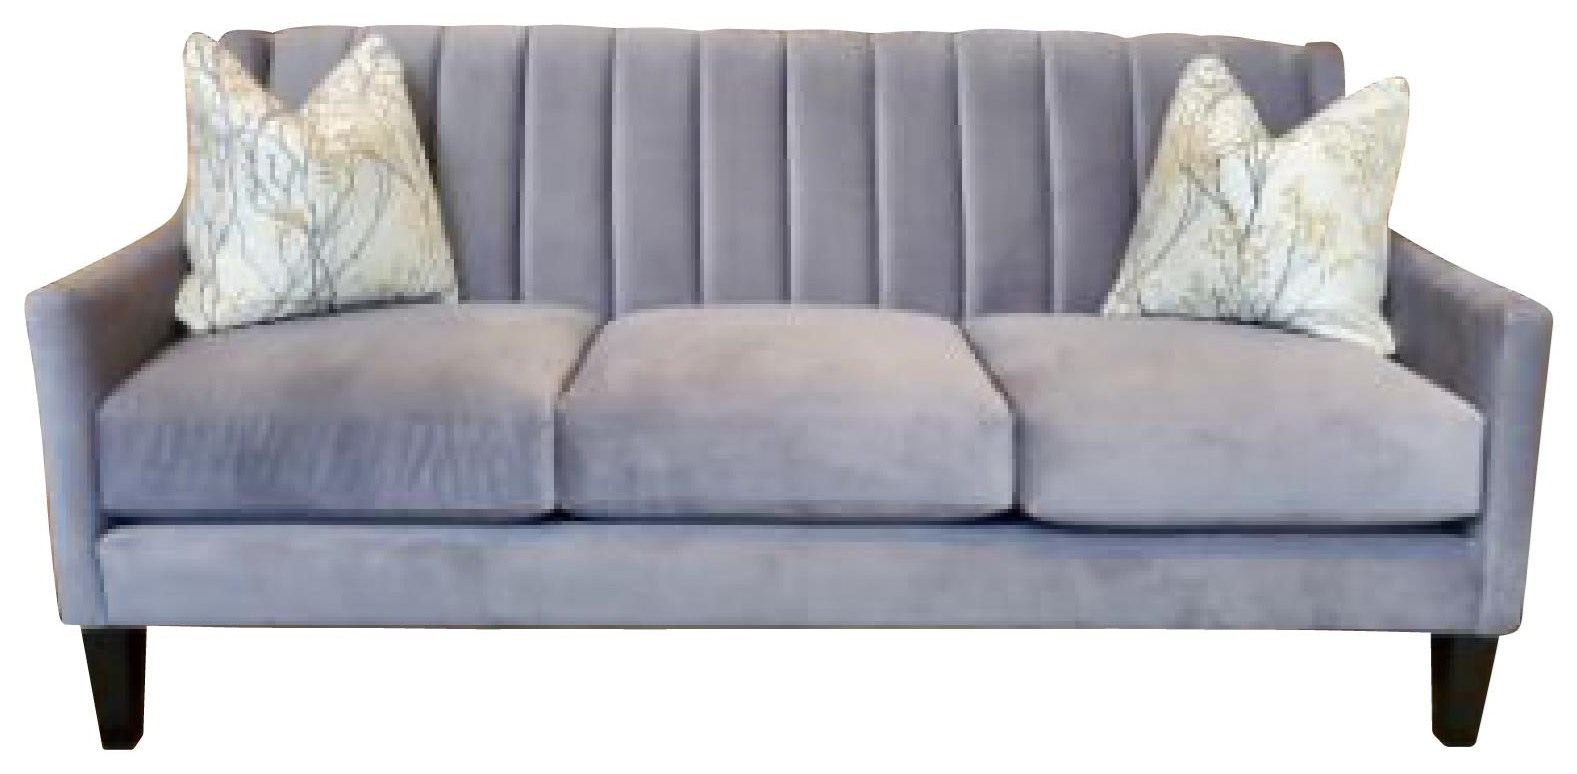 Sol Condo Sofa by Taelor Designs at Bennett's Furniture and Mattresses